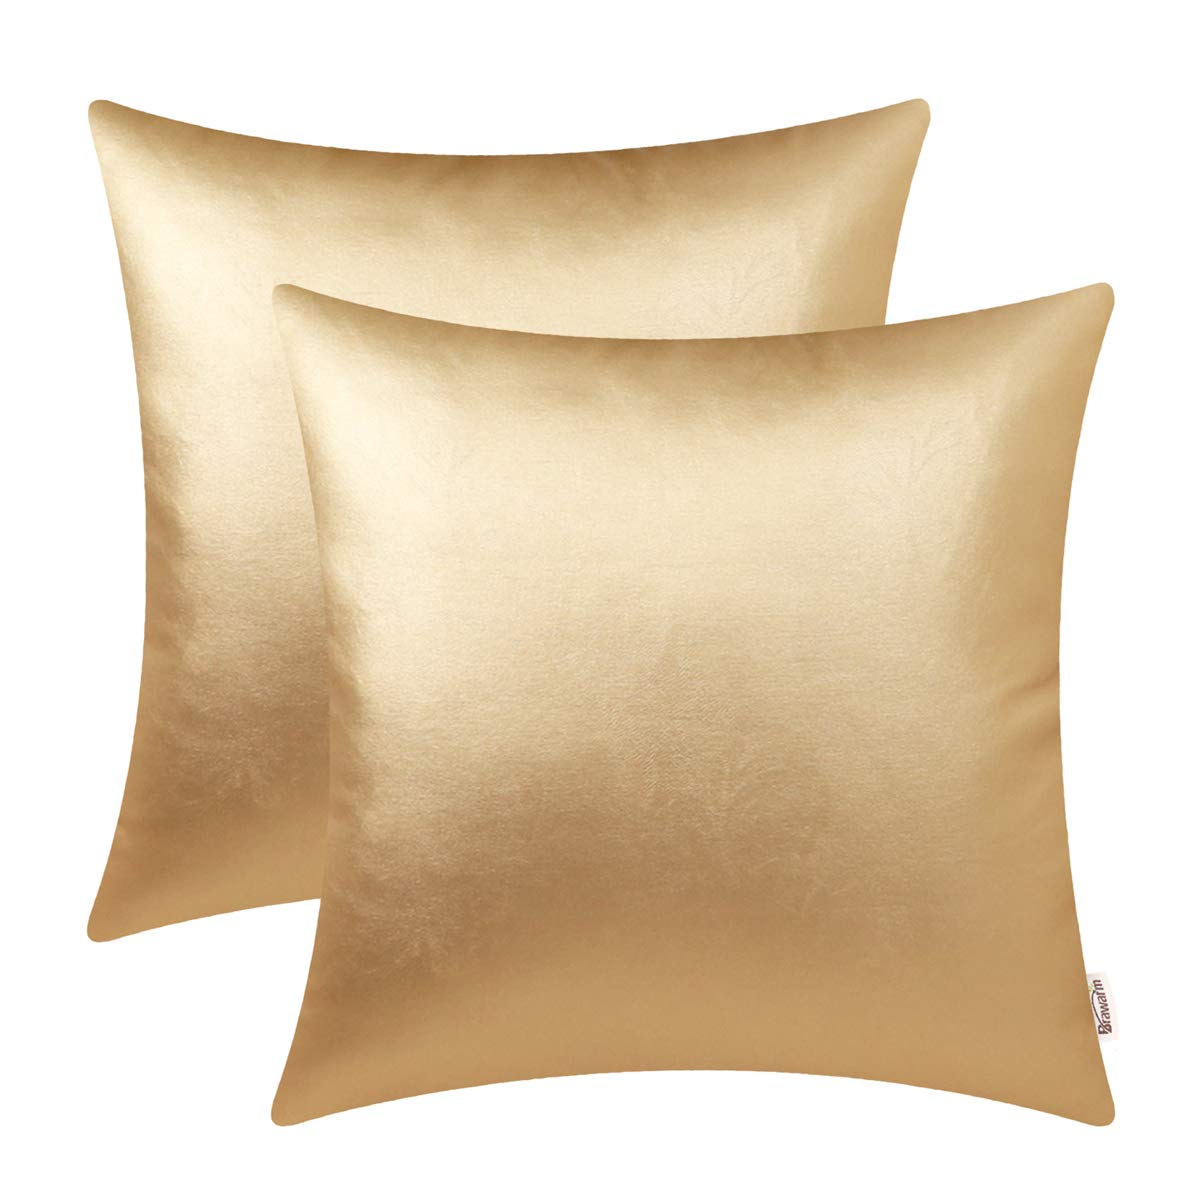 BRAWARM Pack of 2 Cozy Throw Pillow Covers Cases for Couch Sofa Home Decoration Solid Dyed Soft Faux Leather Both Sides 22 X 22 Inches Gold